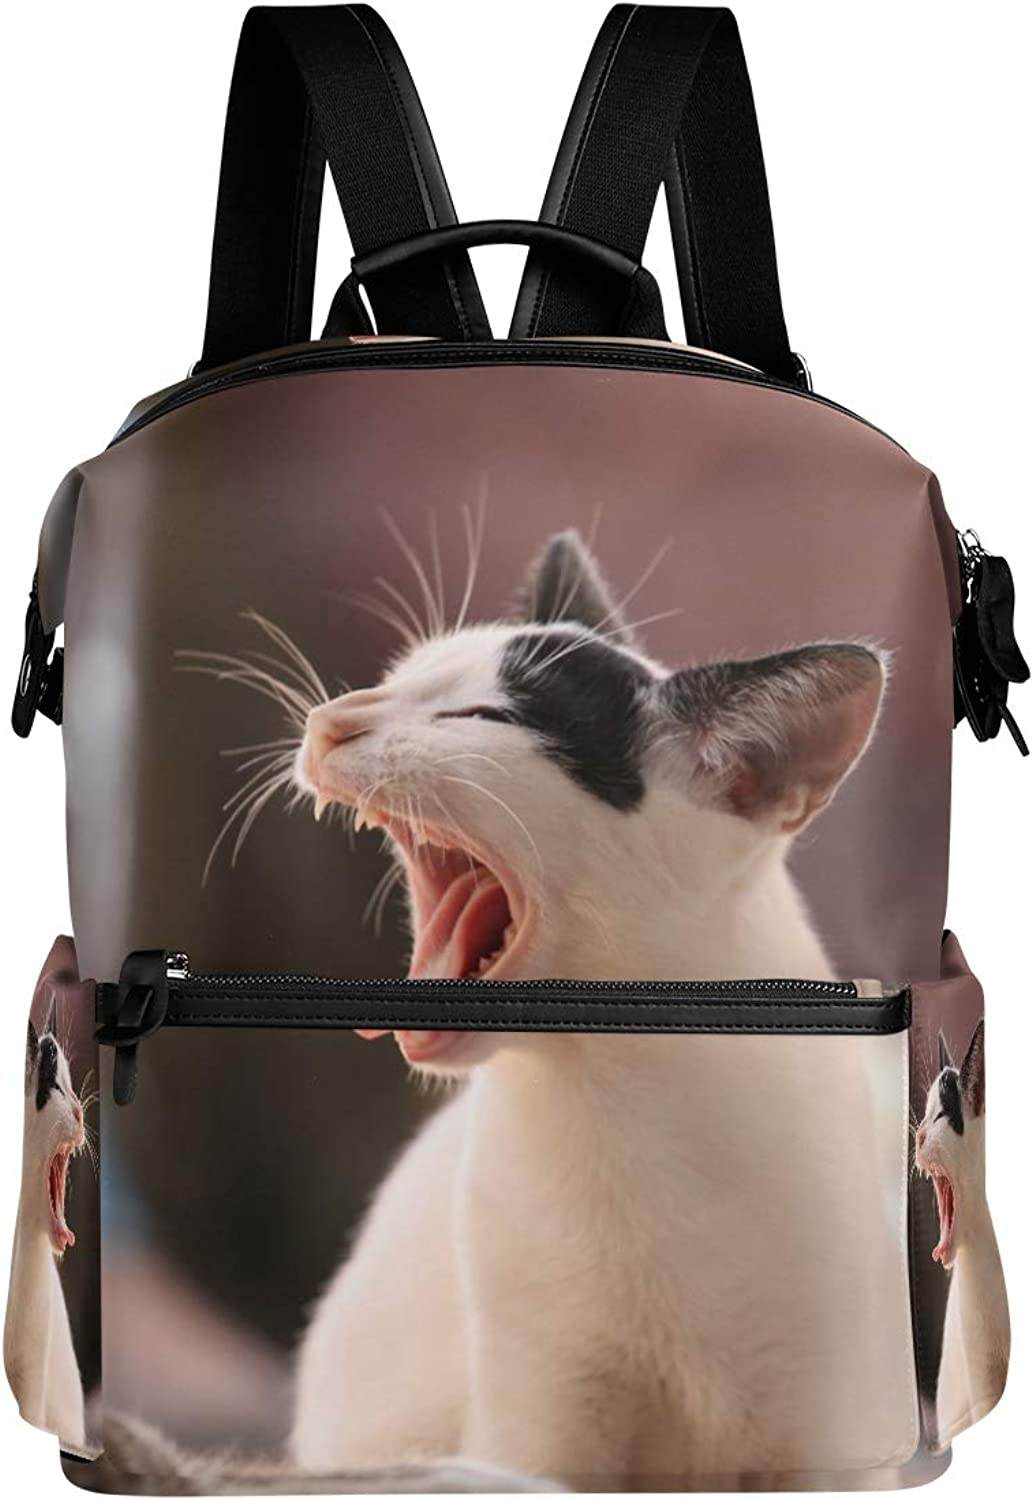 MONTOJ Animal Yawn Cat Pattern Leather Travel Bag Campus Backpack